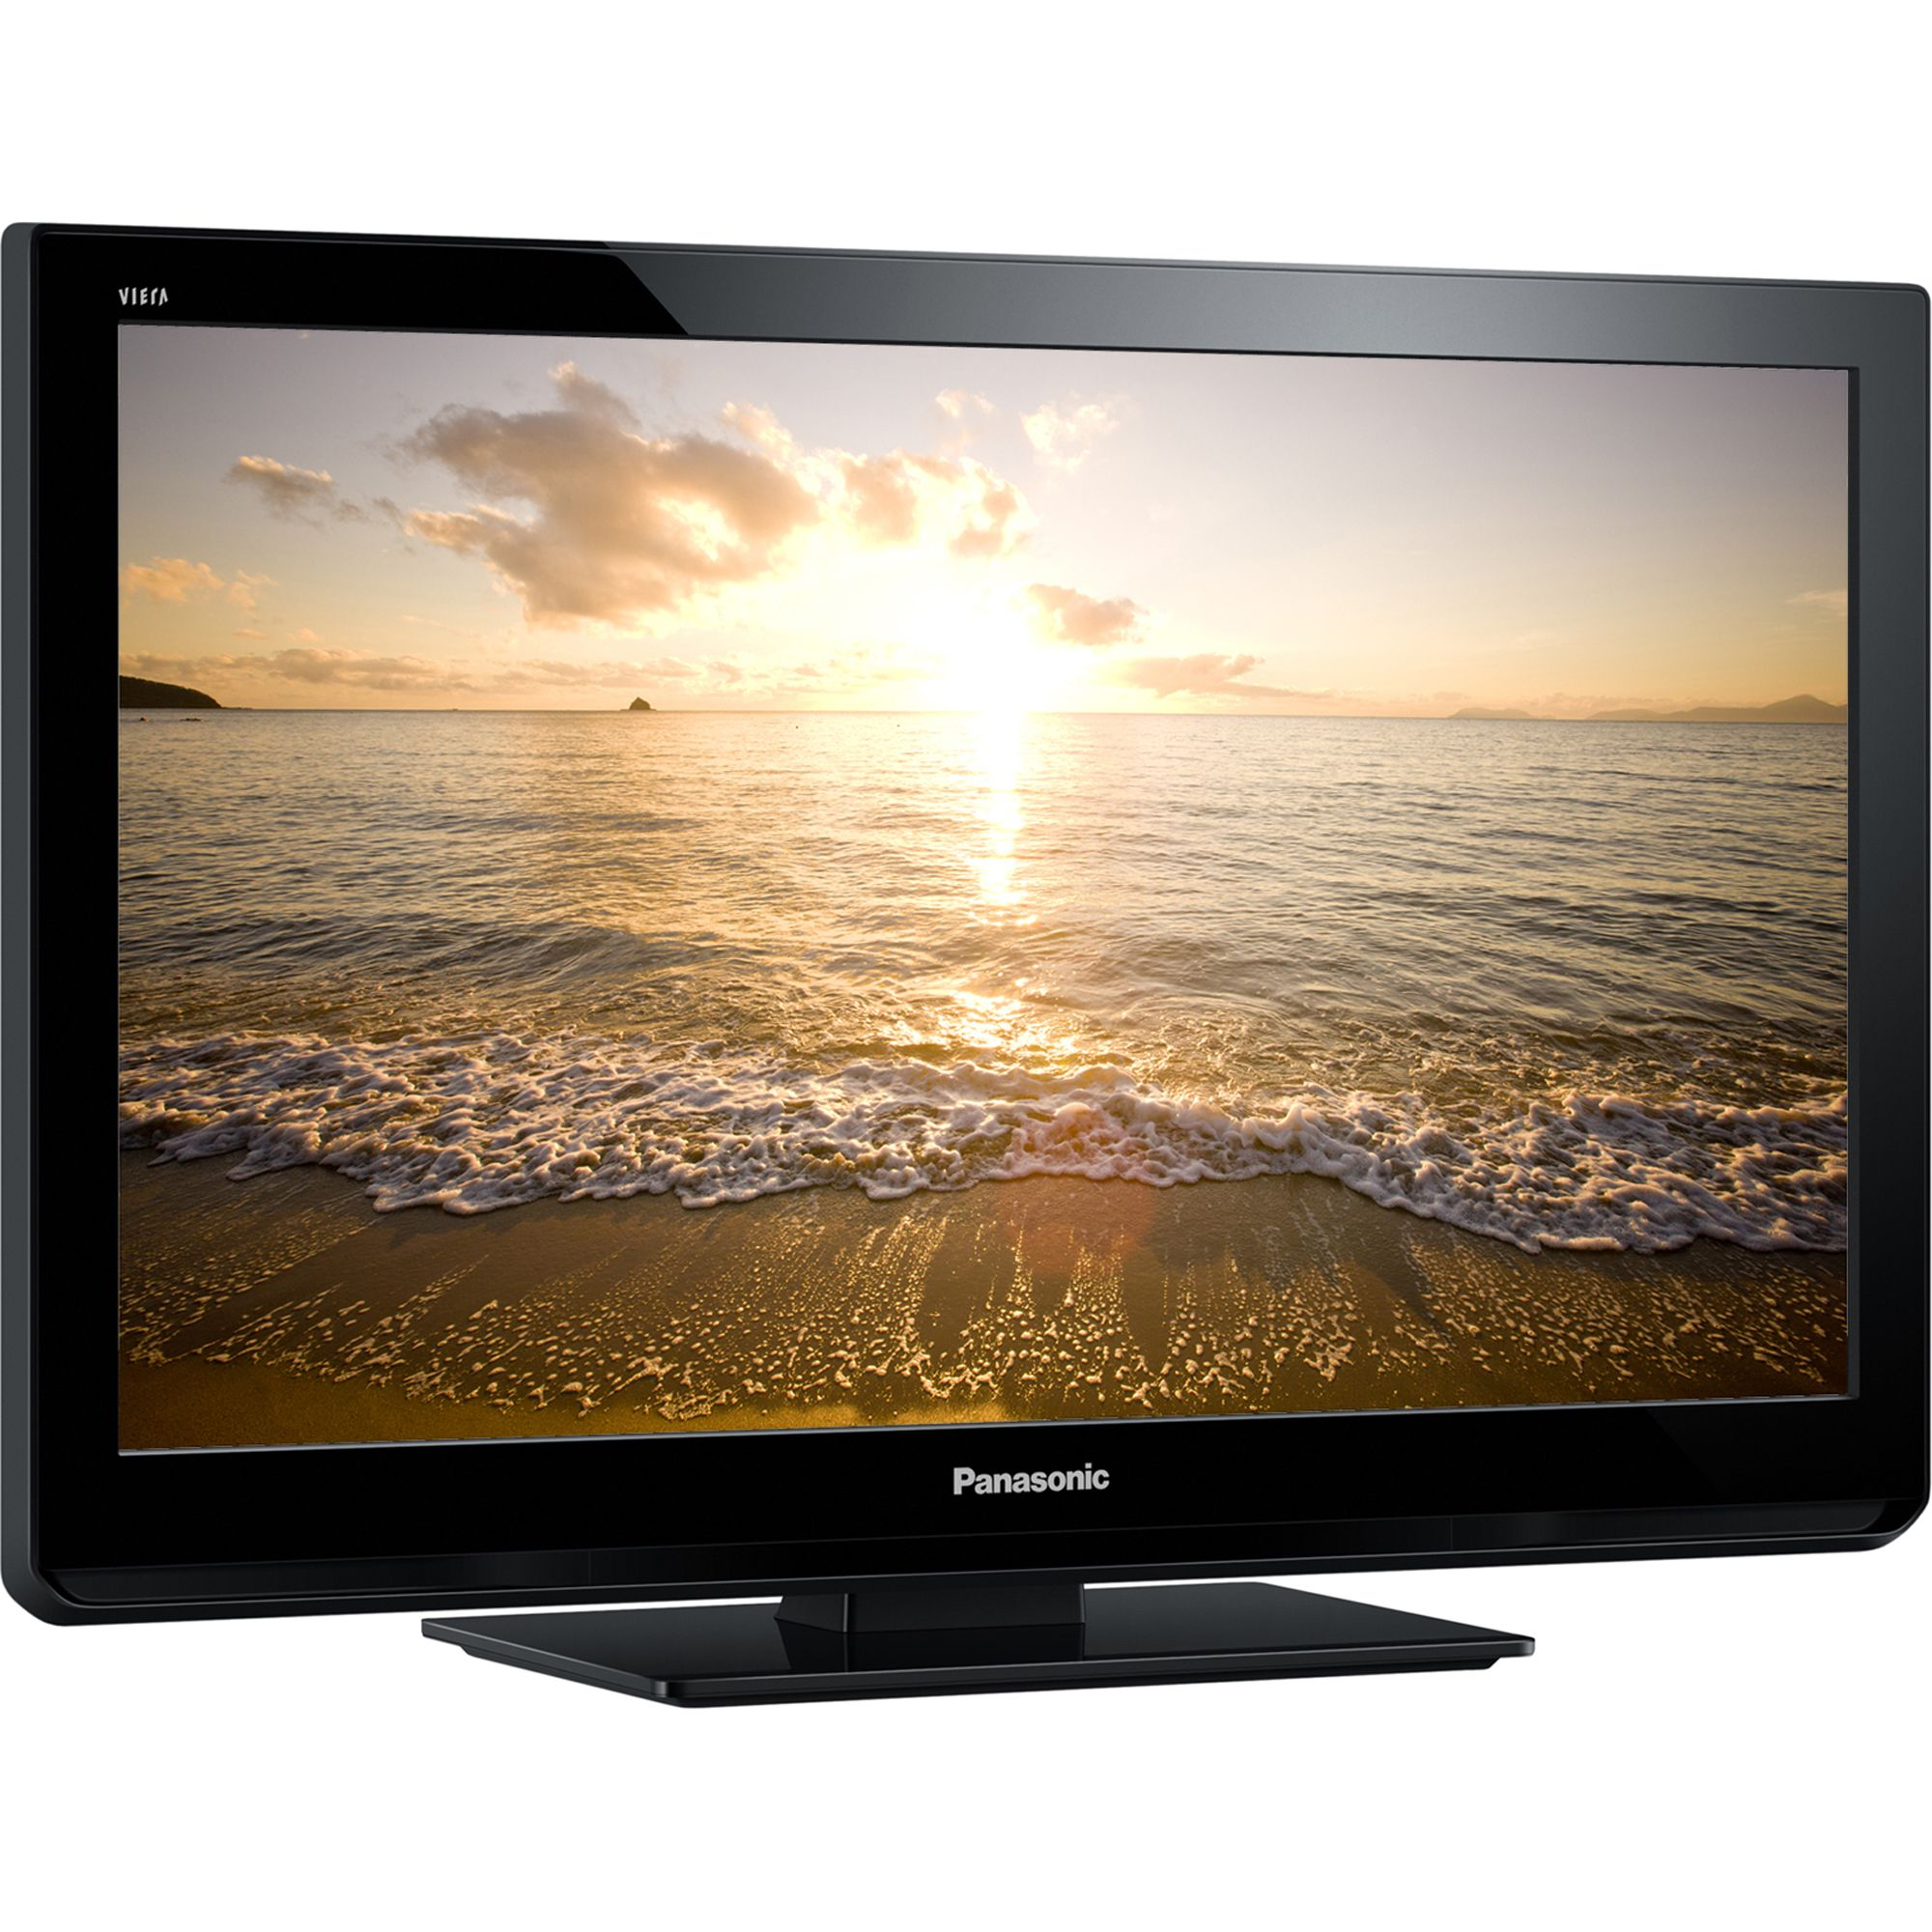 "Panasonic Refurbished 32"" Class Viera C3 Series LCD HDTV"